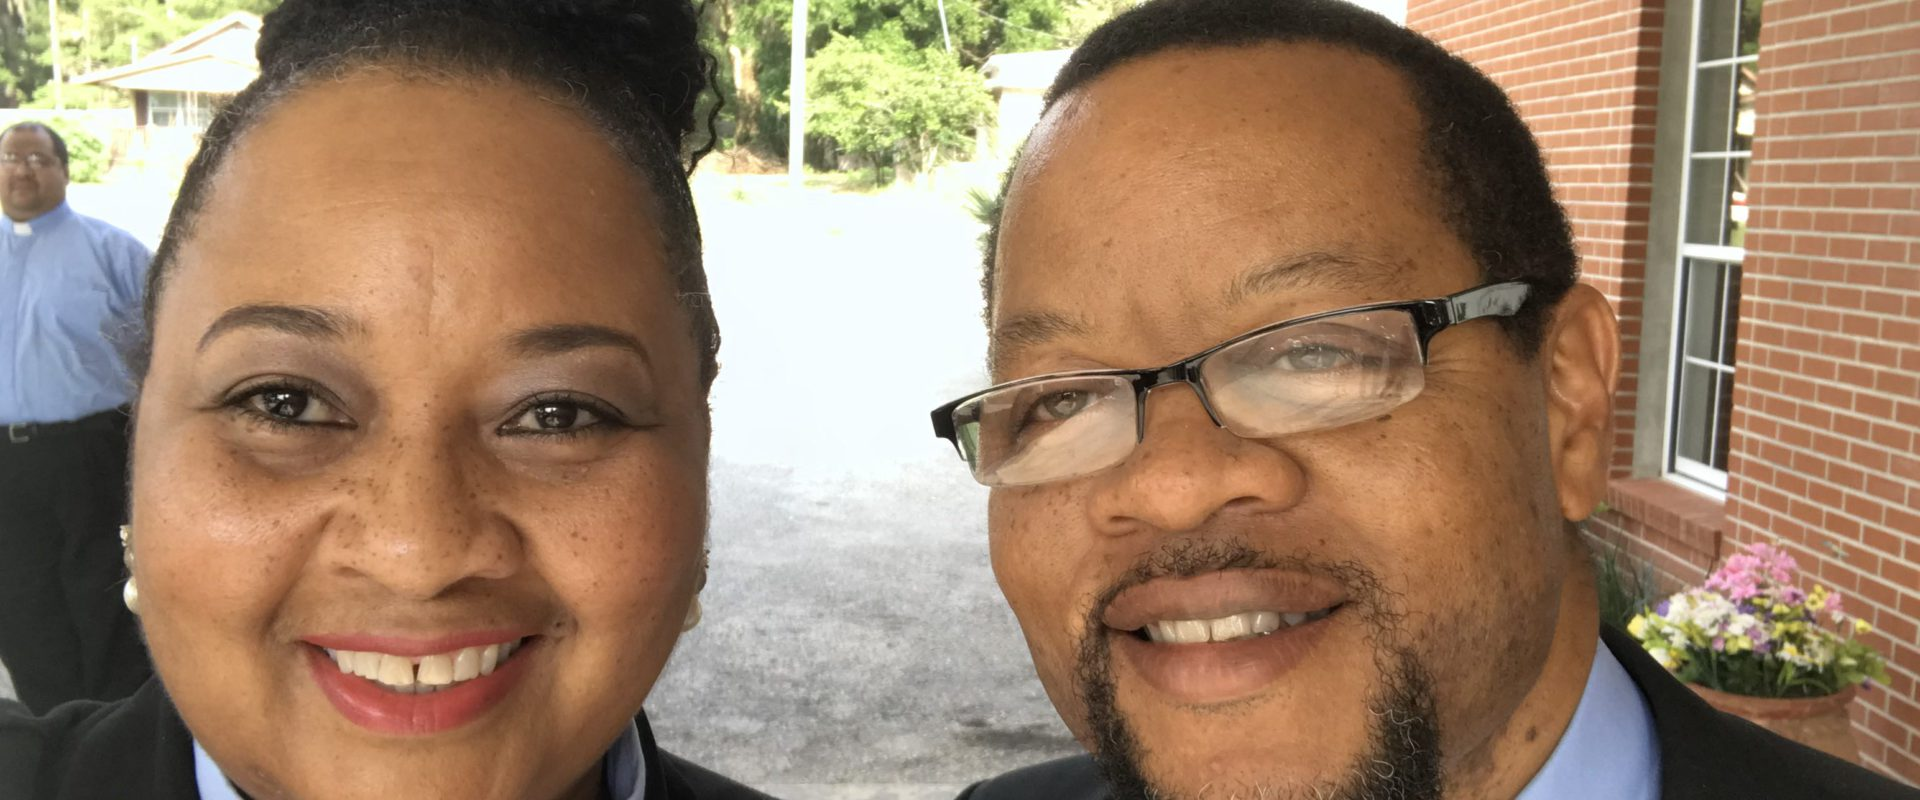 Permalink to: Ministers Franklin & Arletia Mayfield